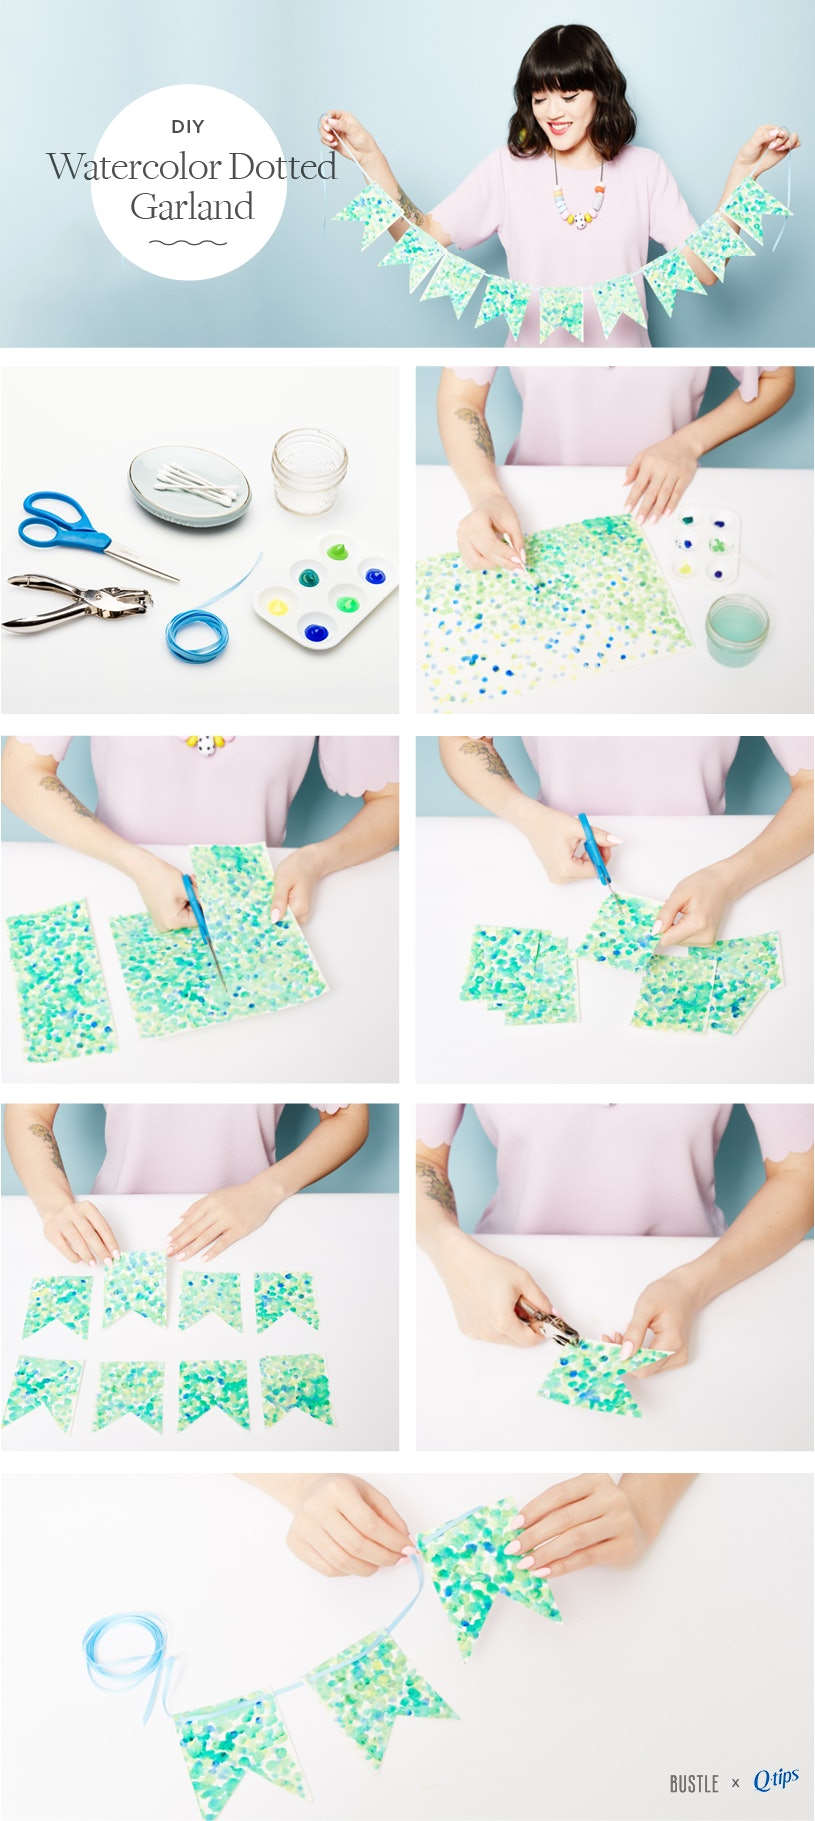 5 Q Tips Diy Hacks You Didn T Know About From Diy Expert Sam Ushiro